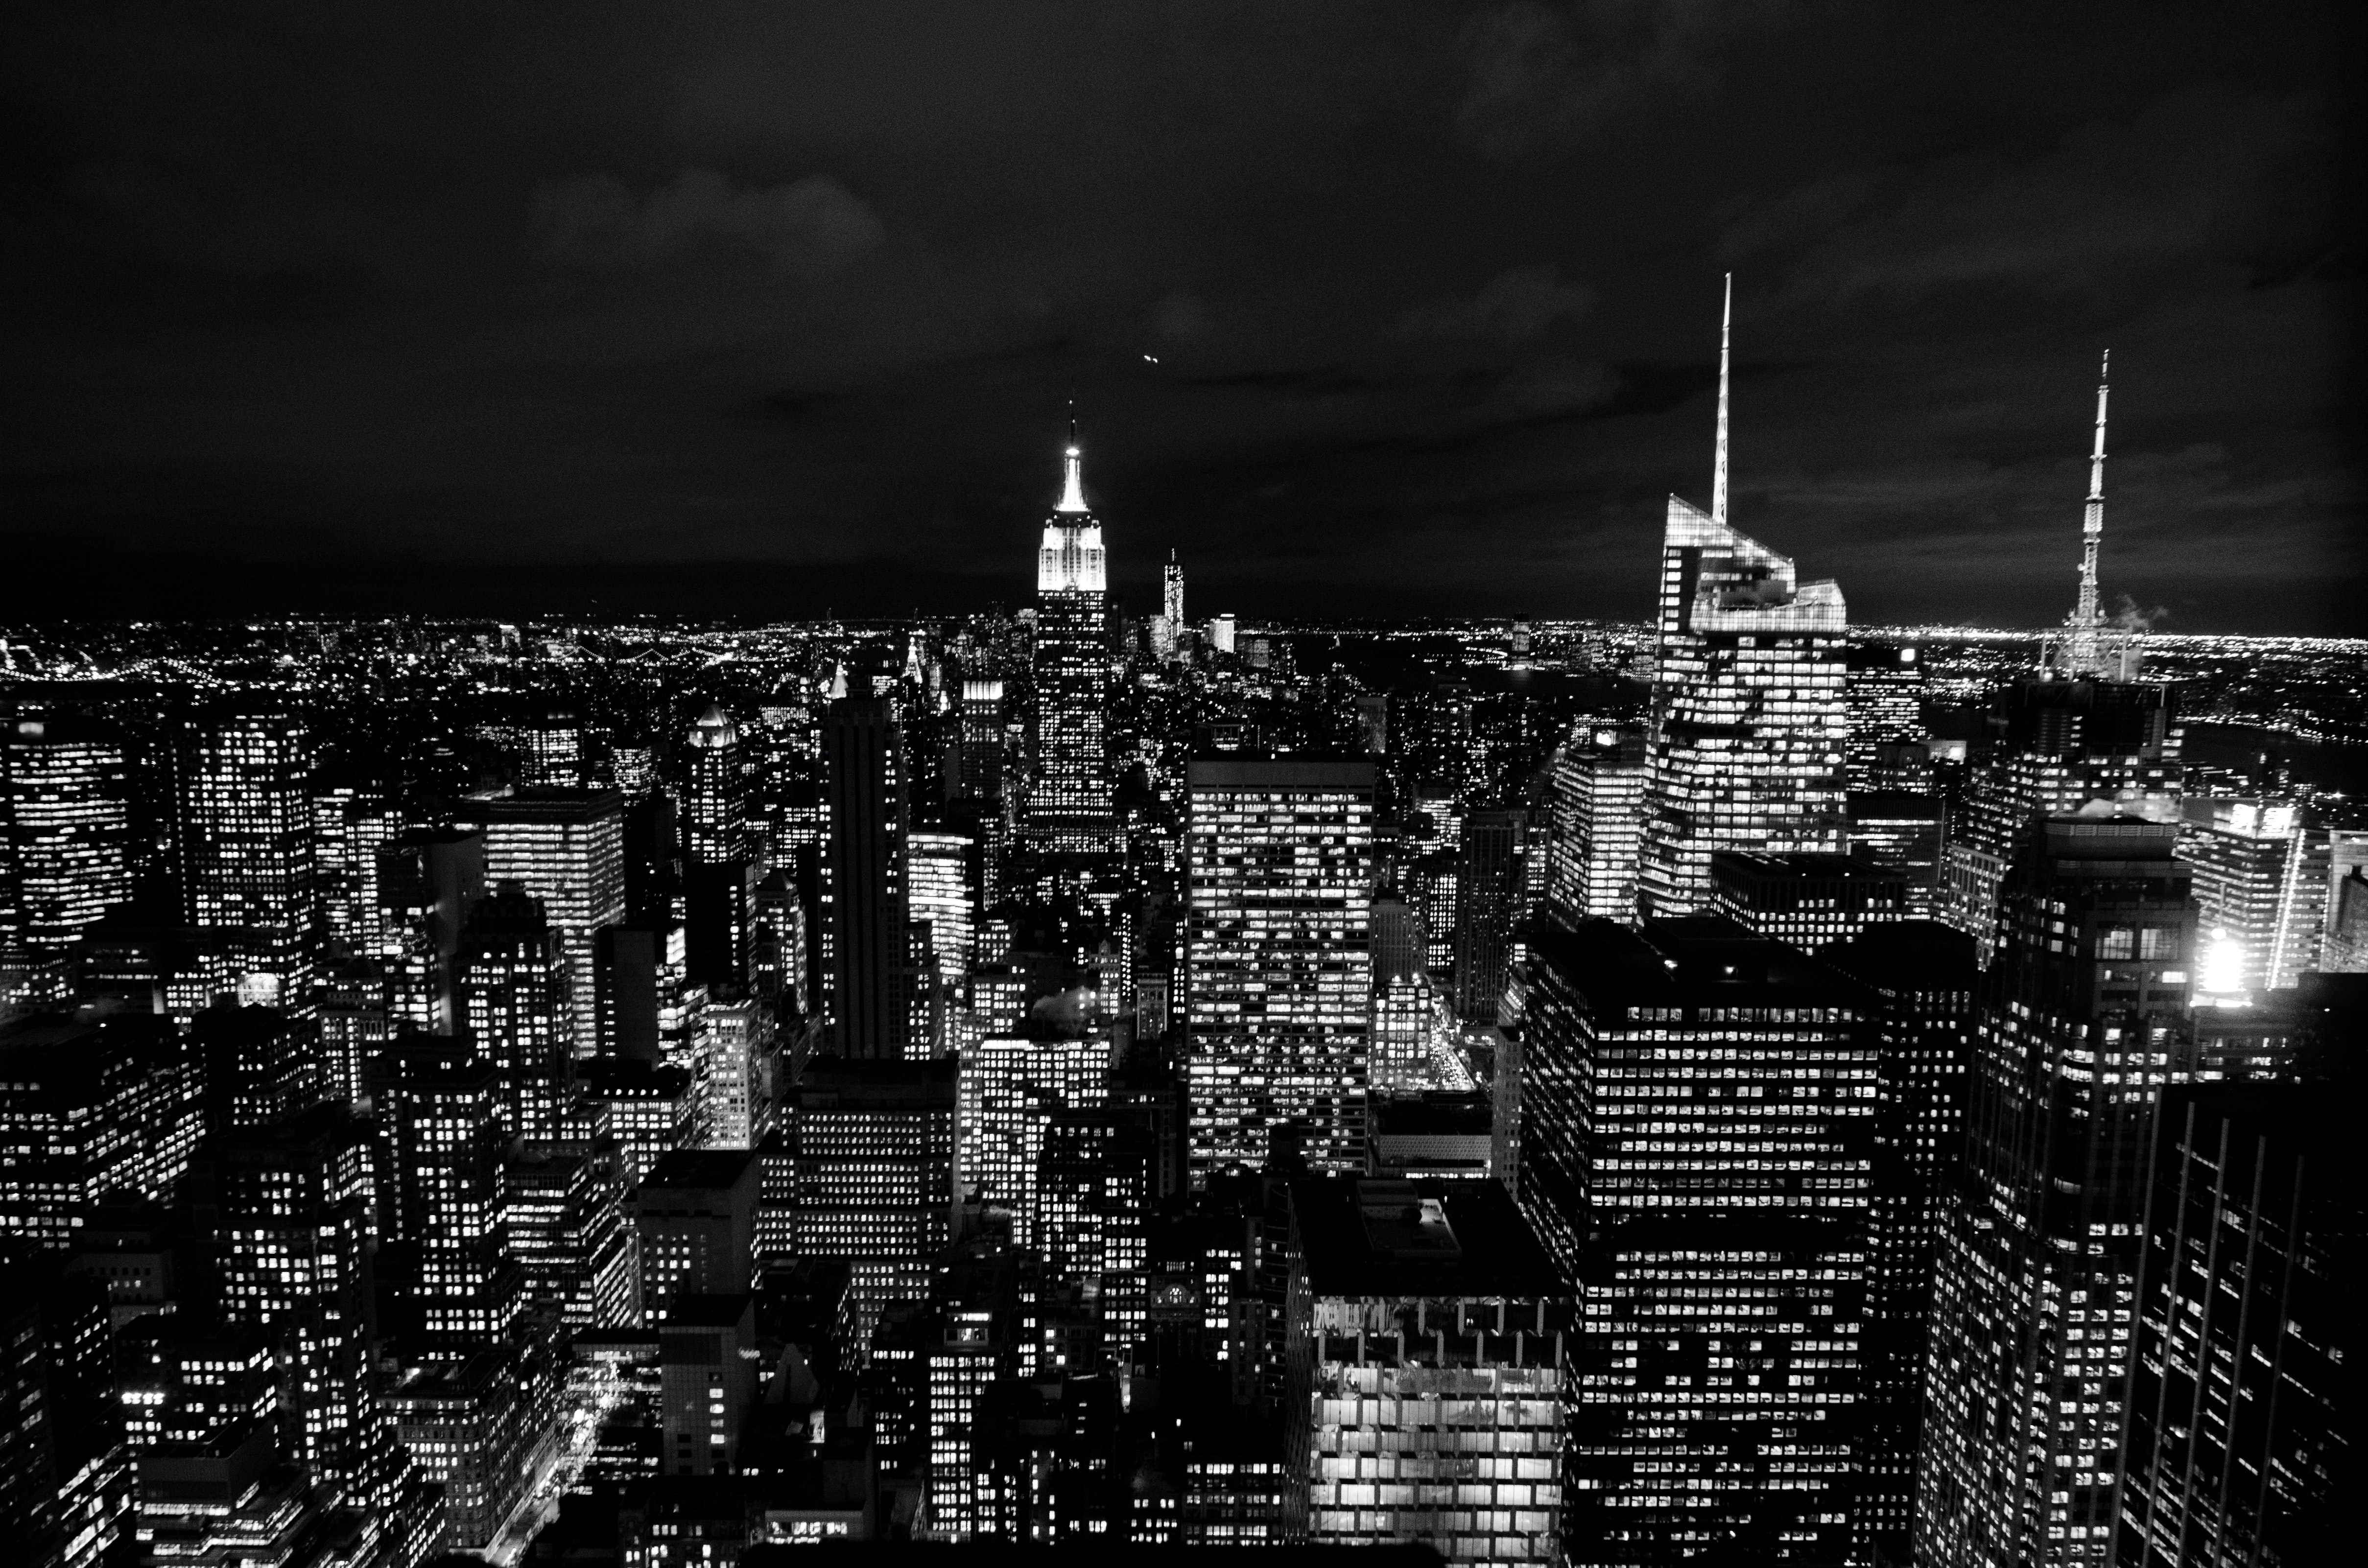 Black and white photo of the New York City skyscraper lights at night